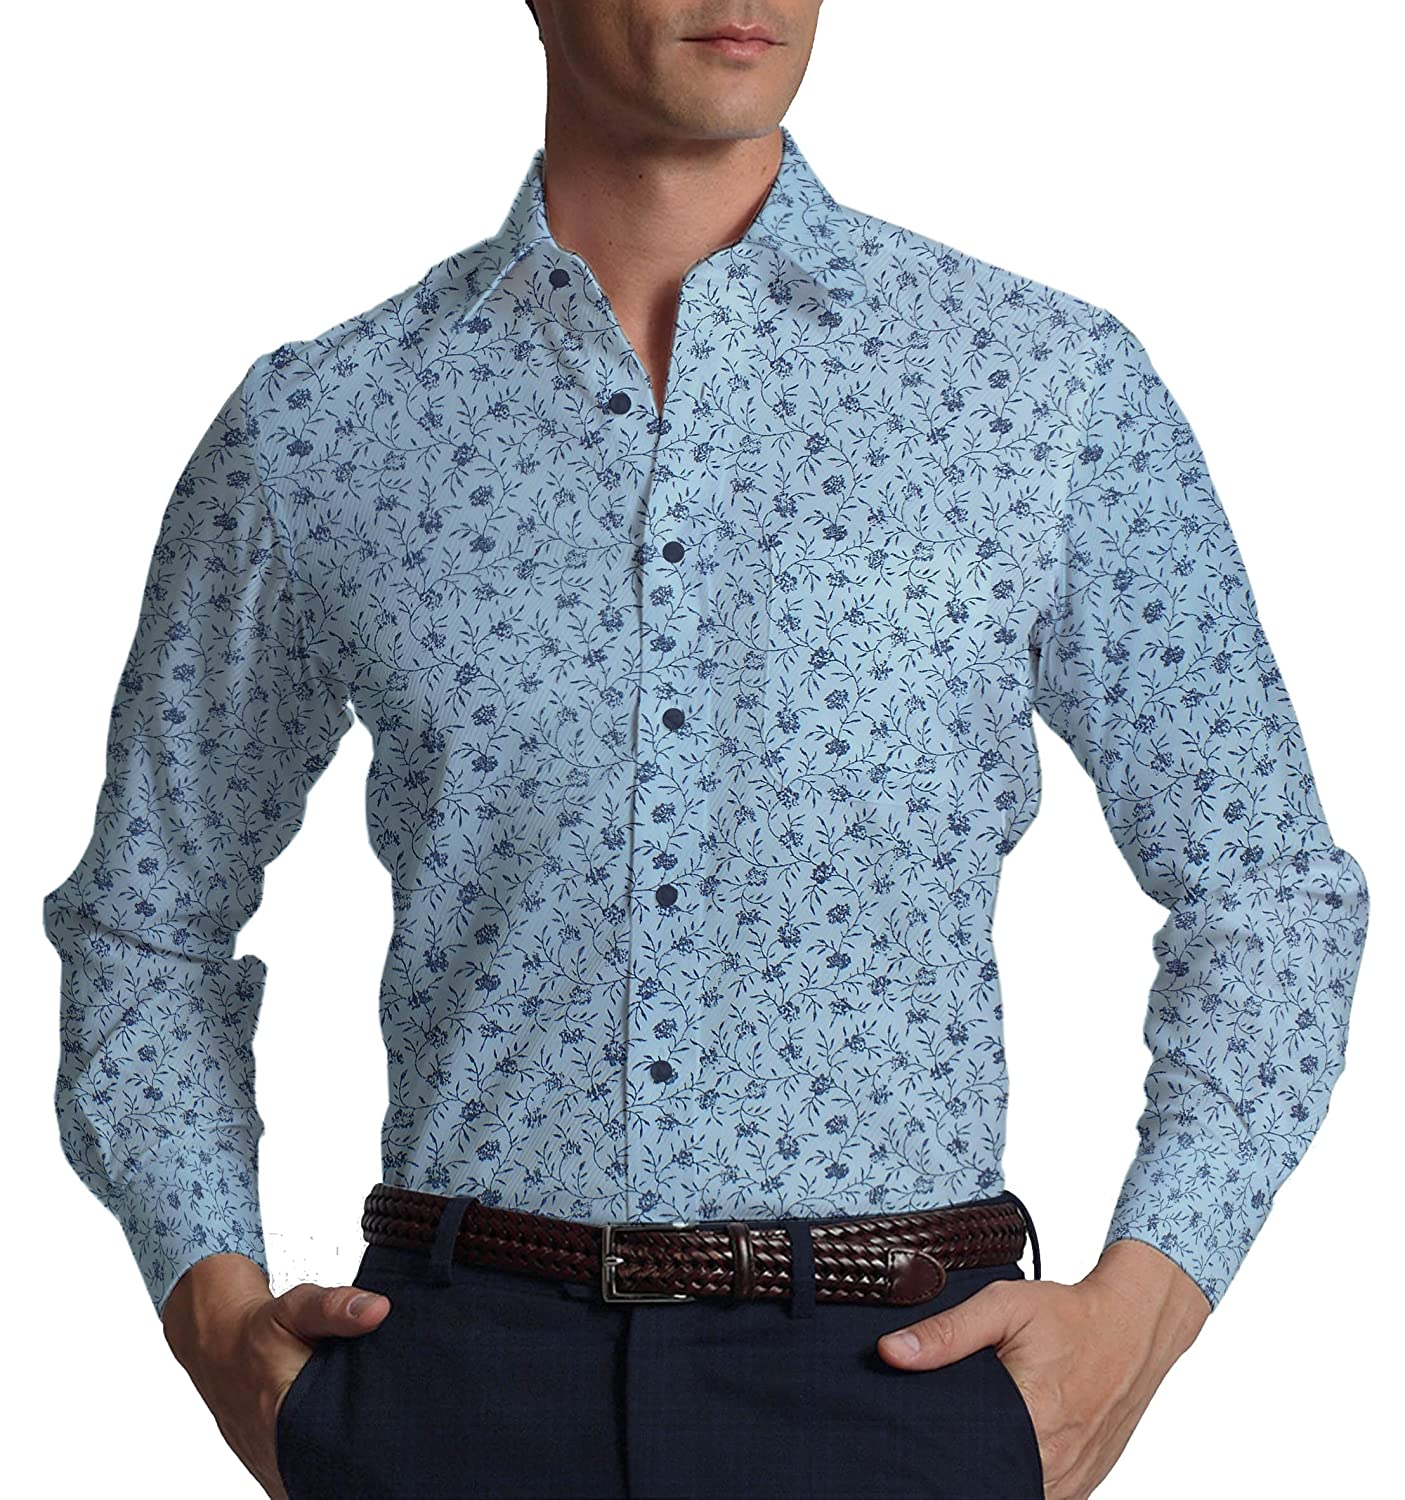 ccc9def40 Raymond Men s Polyester Viscose Unstitched Checks Trouser with Exquisite  Sky Blue Floral Printed Shirt Fabric(Blue)  Amazon.in  Clothing    Accessories